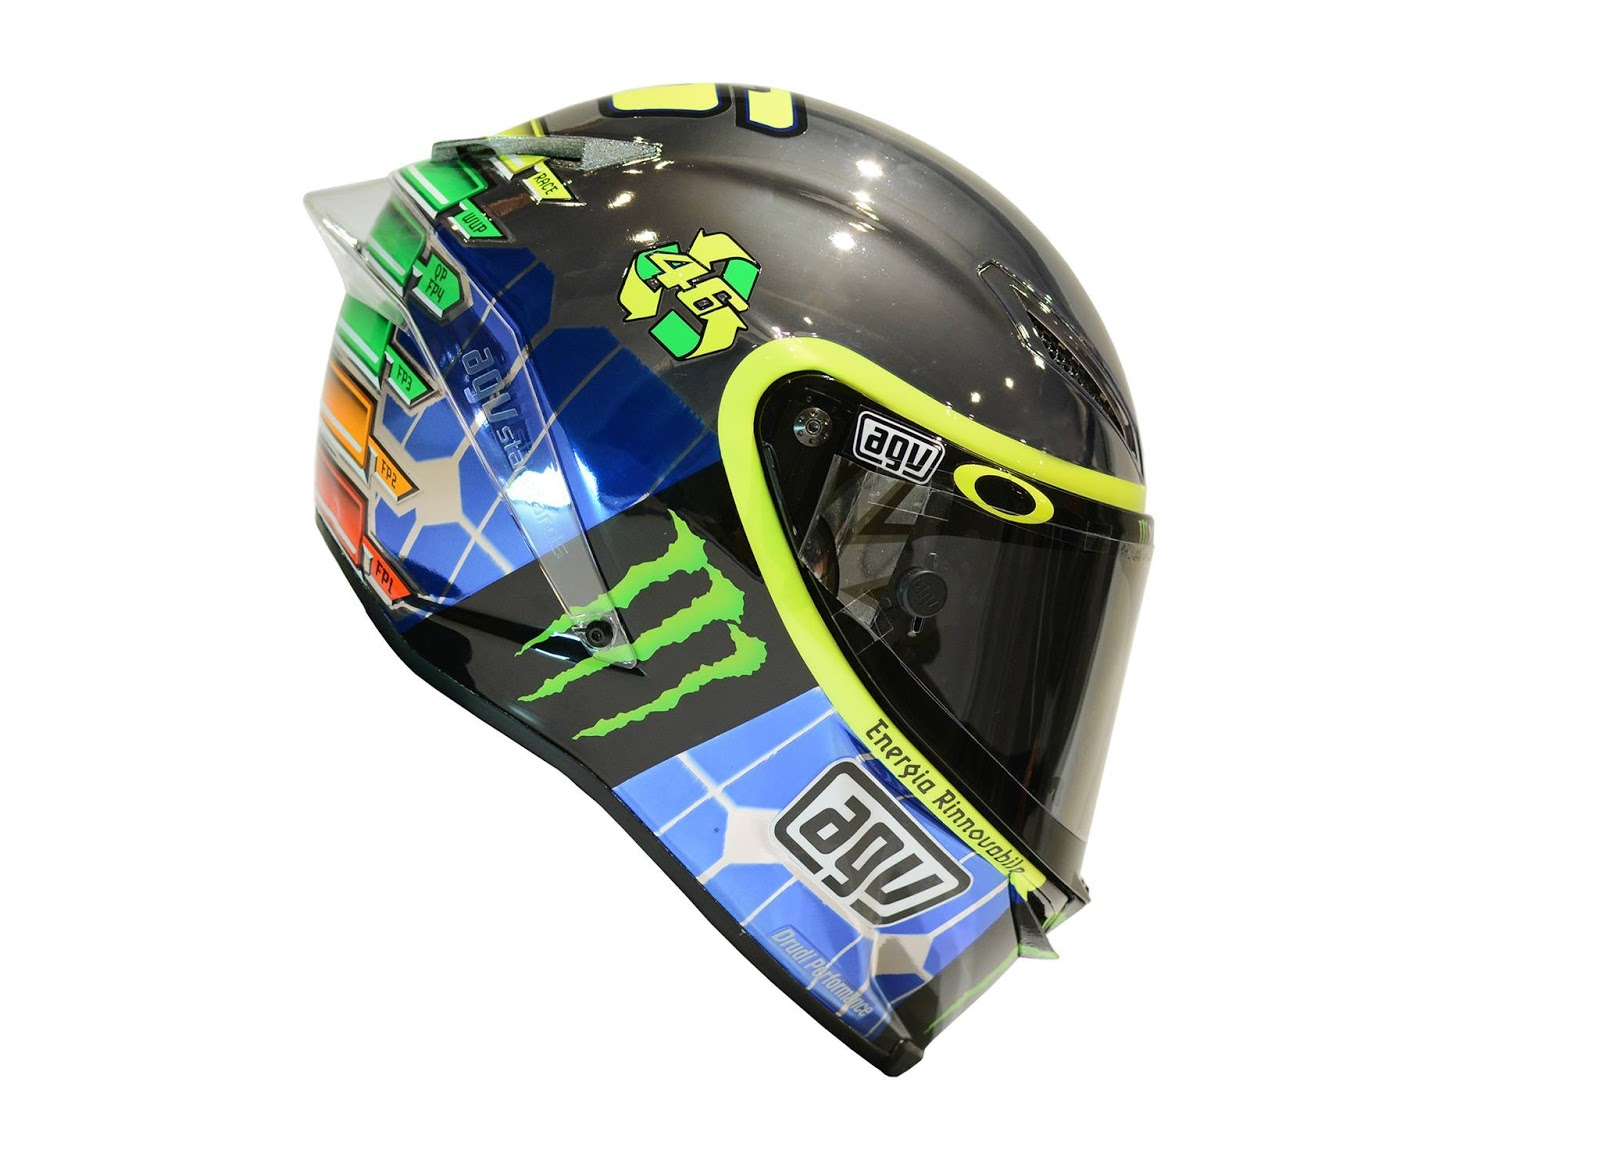 champion helmets agv corsa vr46 mirror valentino rossi. Black Bedroom Furniture Sets. Home Design Ideas